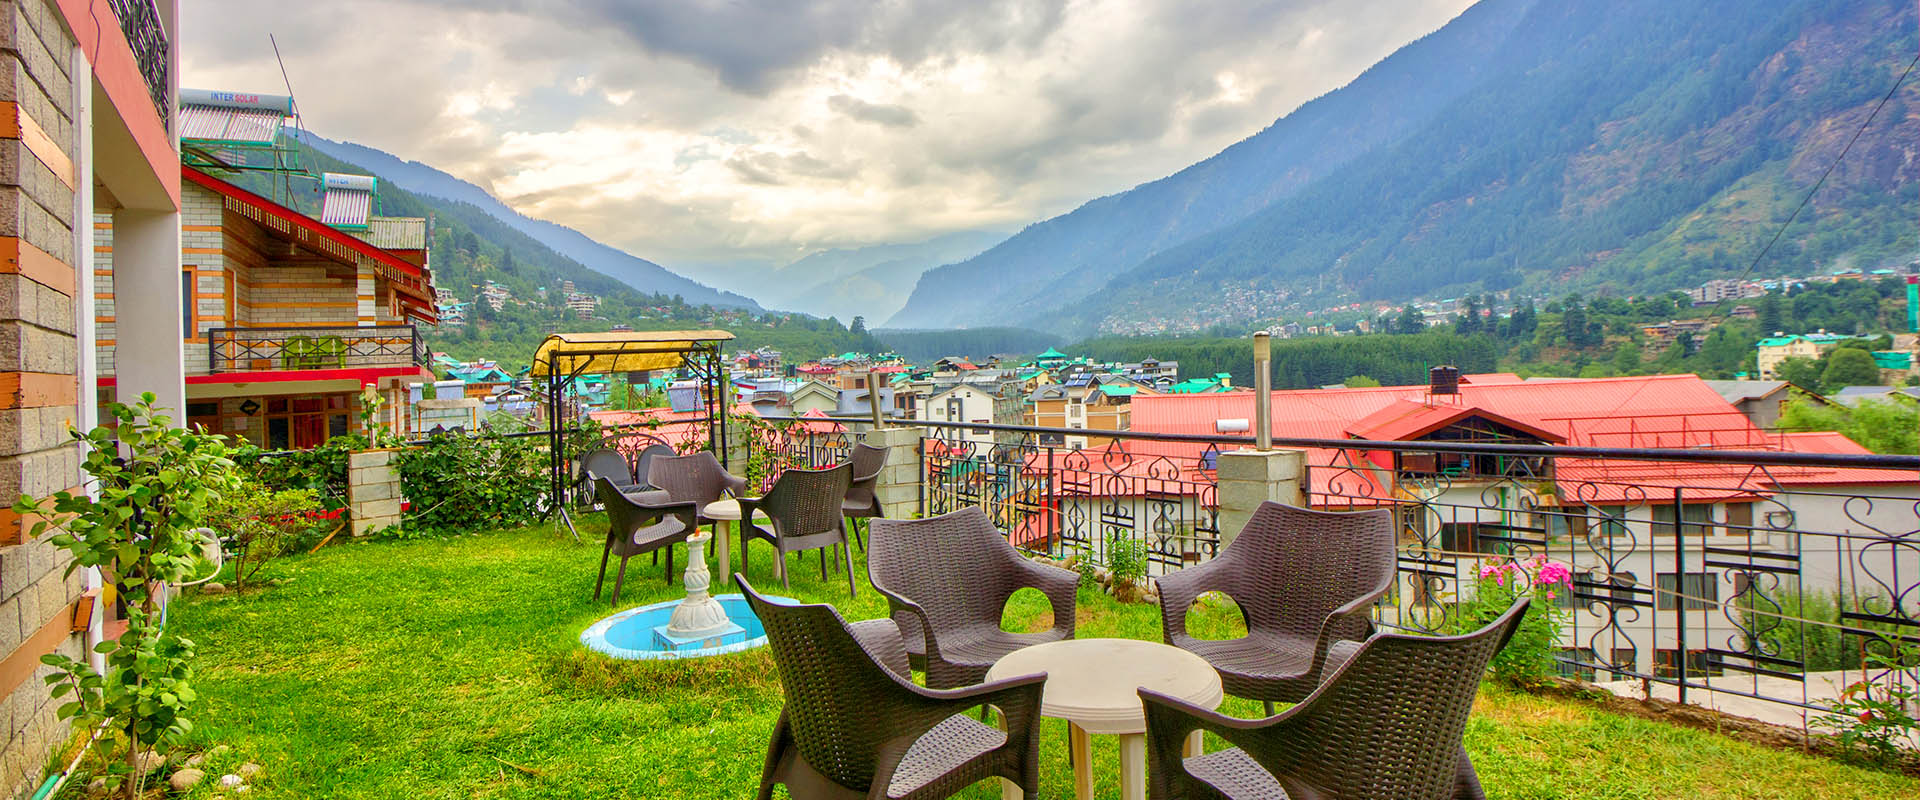 Restaurant - Serving Indian, Chinese & Continental Cuisines